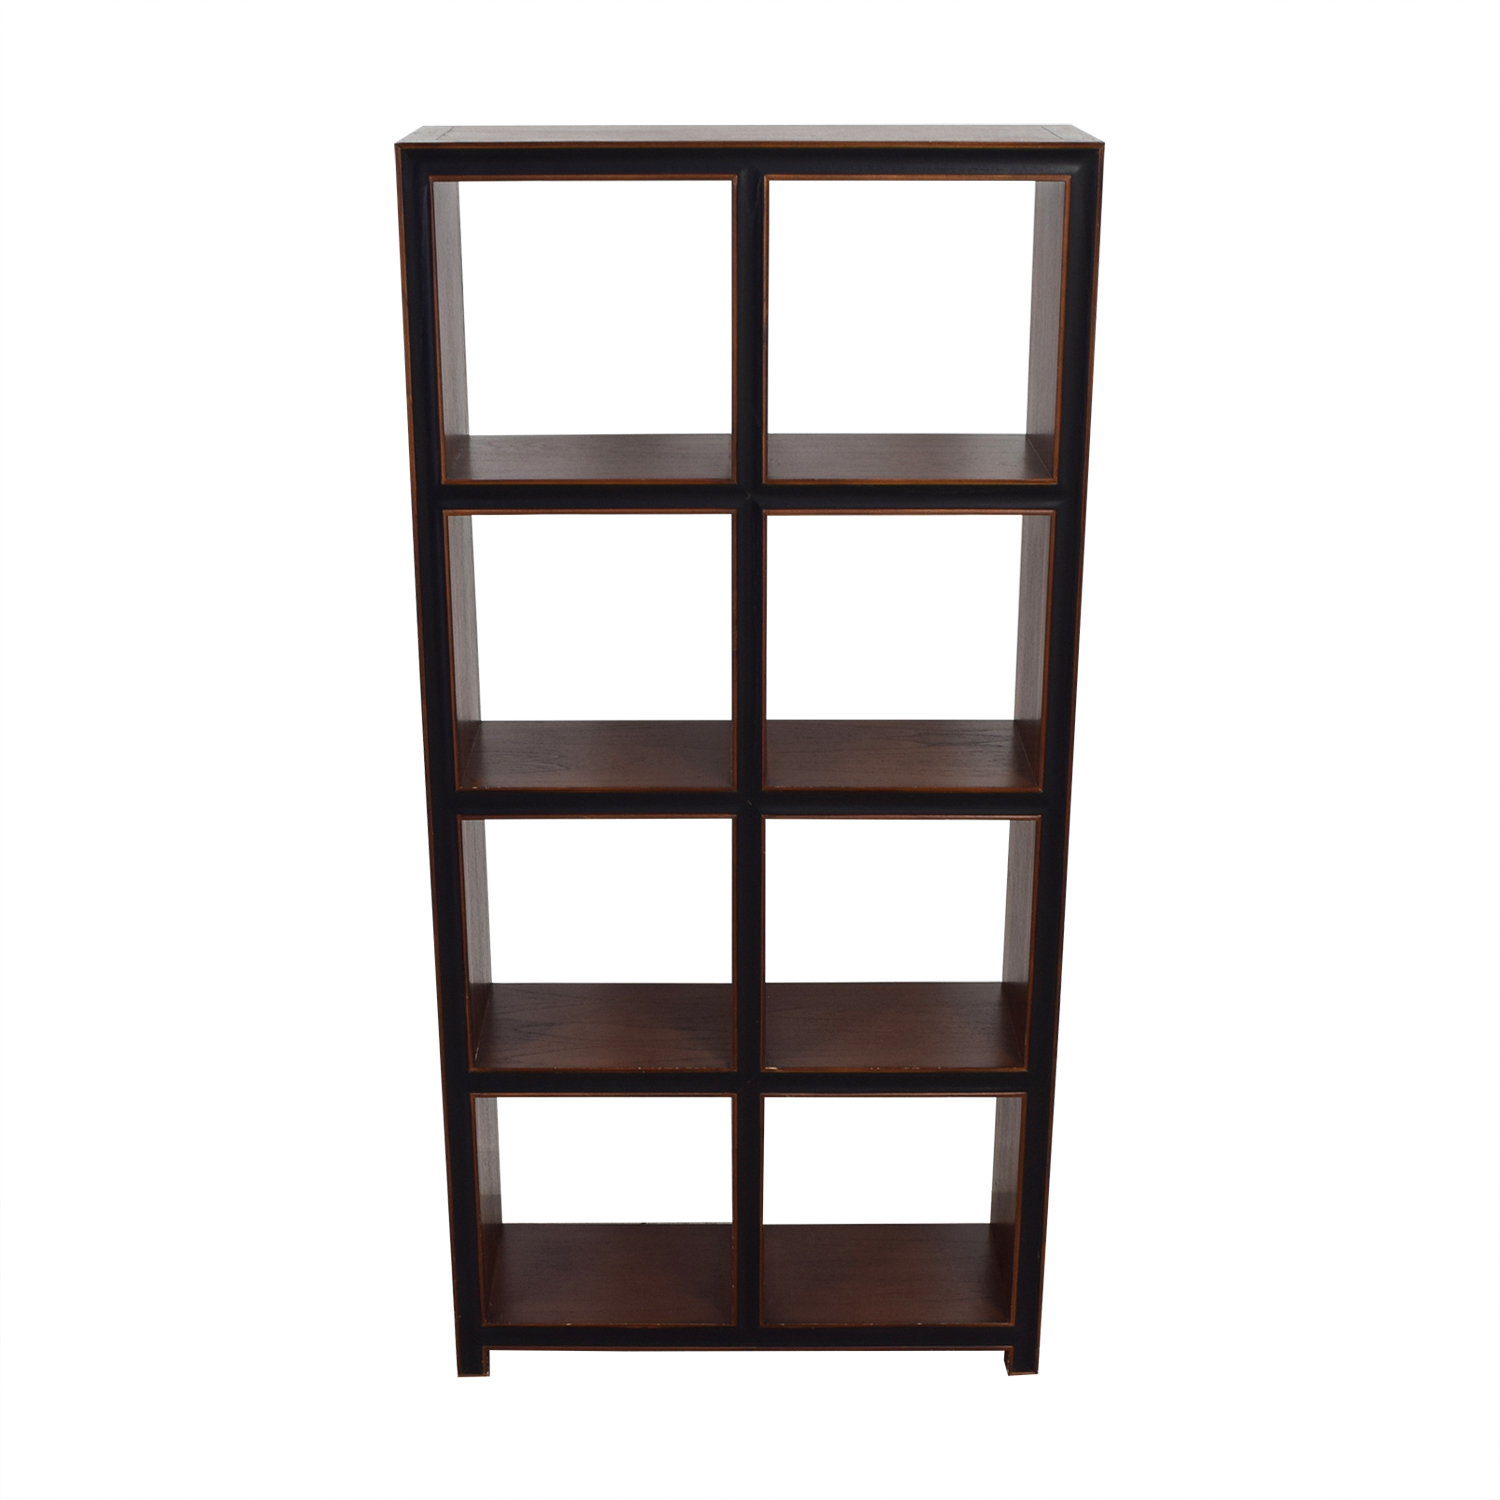 buy Crate & Barrel Crate & Barrel Wood Bookcase online